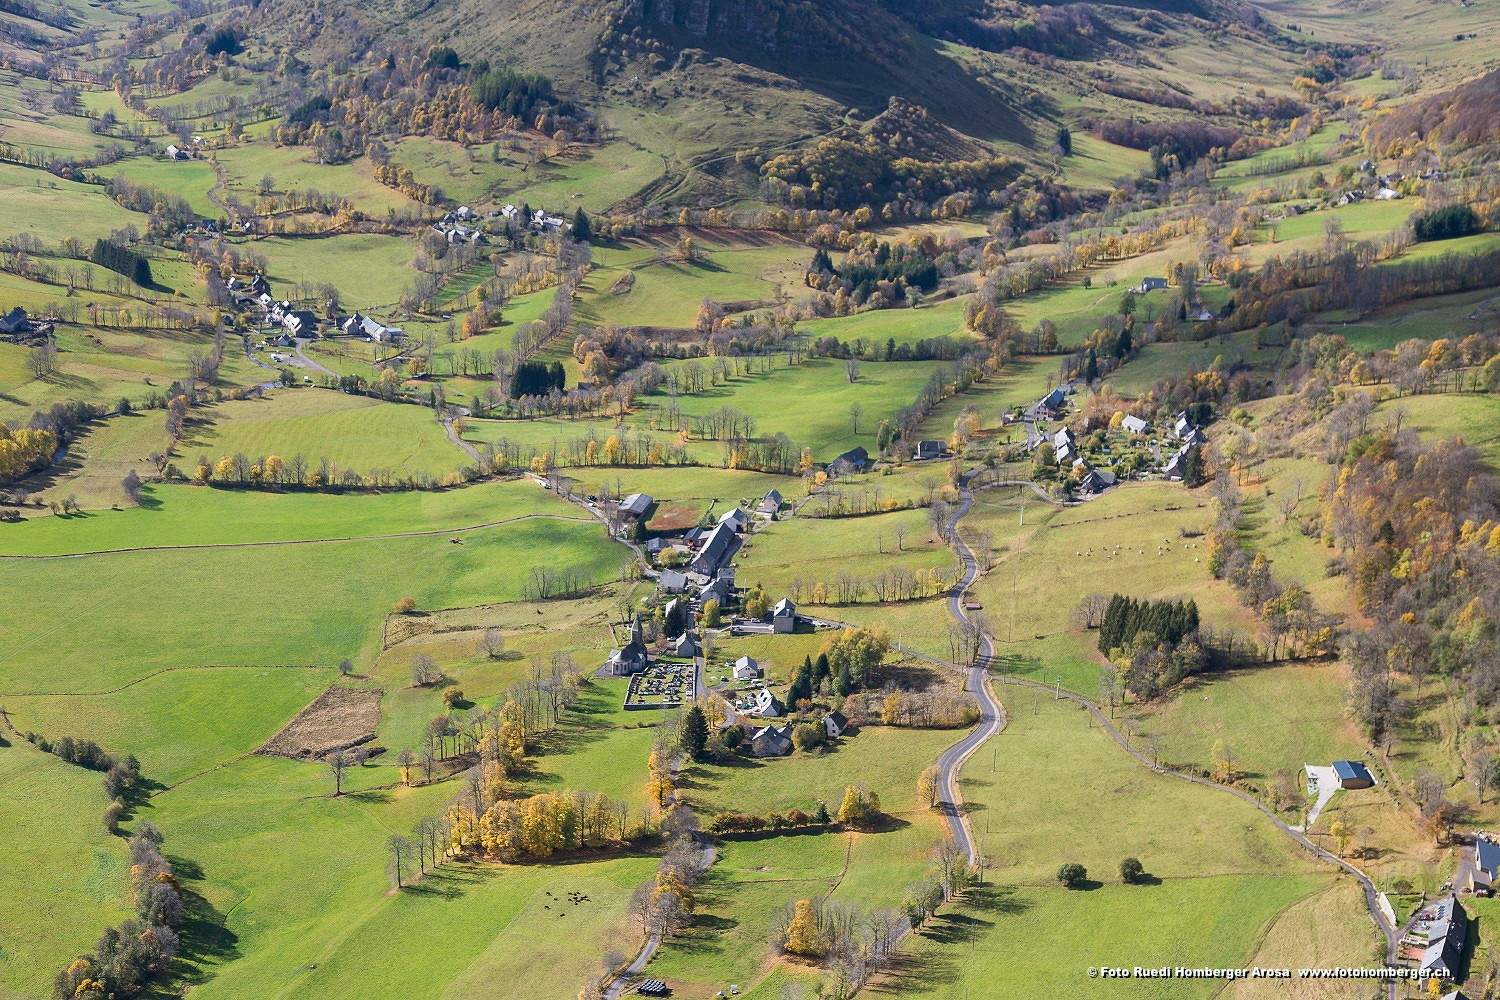 La commune de Lavigerie dans le Cantal. Photo ©Ruedi Homberger